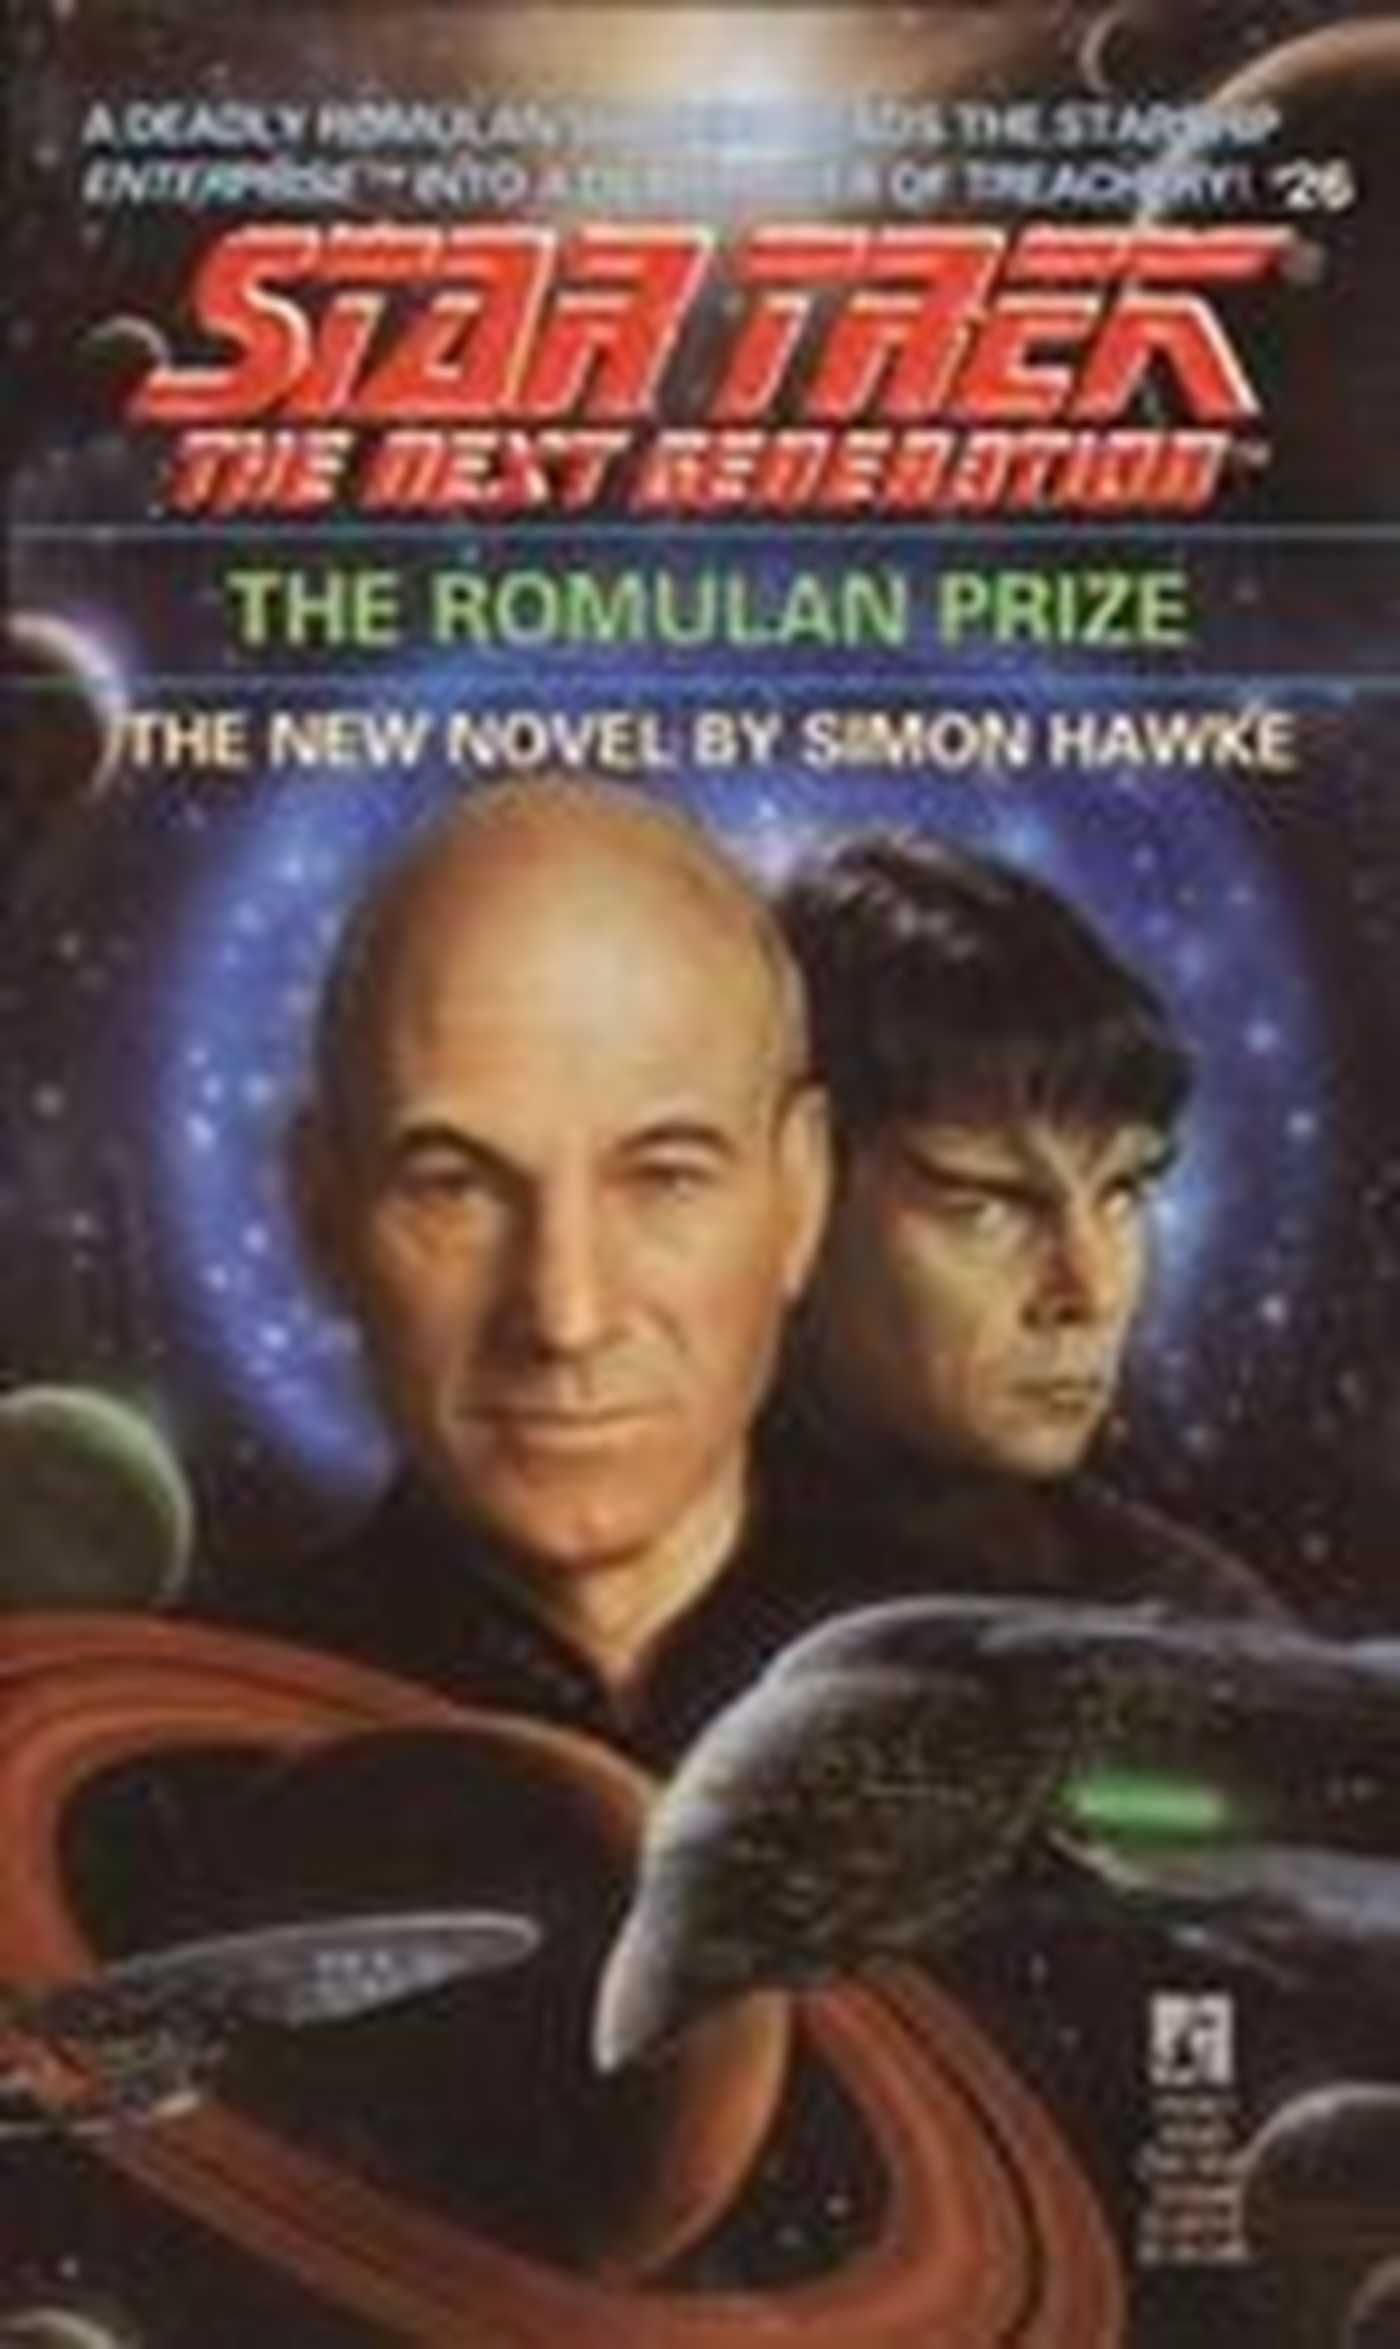 The-romulan-prize-9780743421096_hr